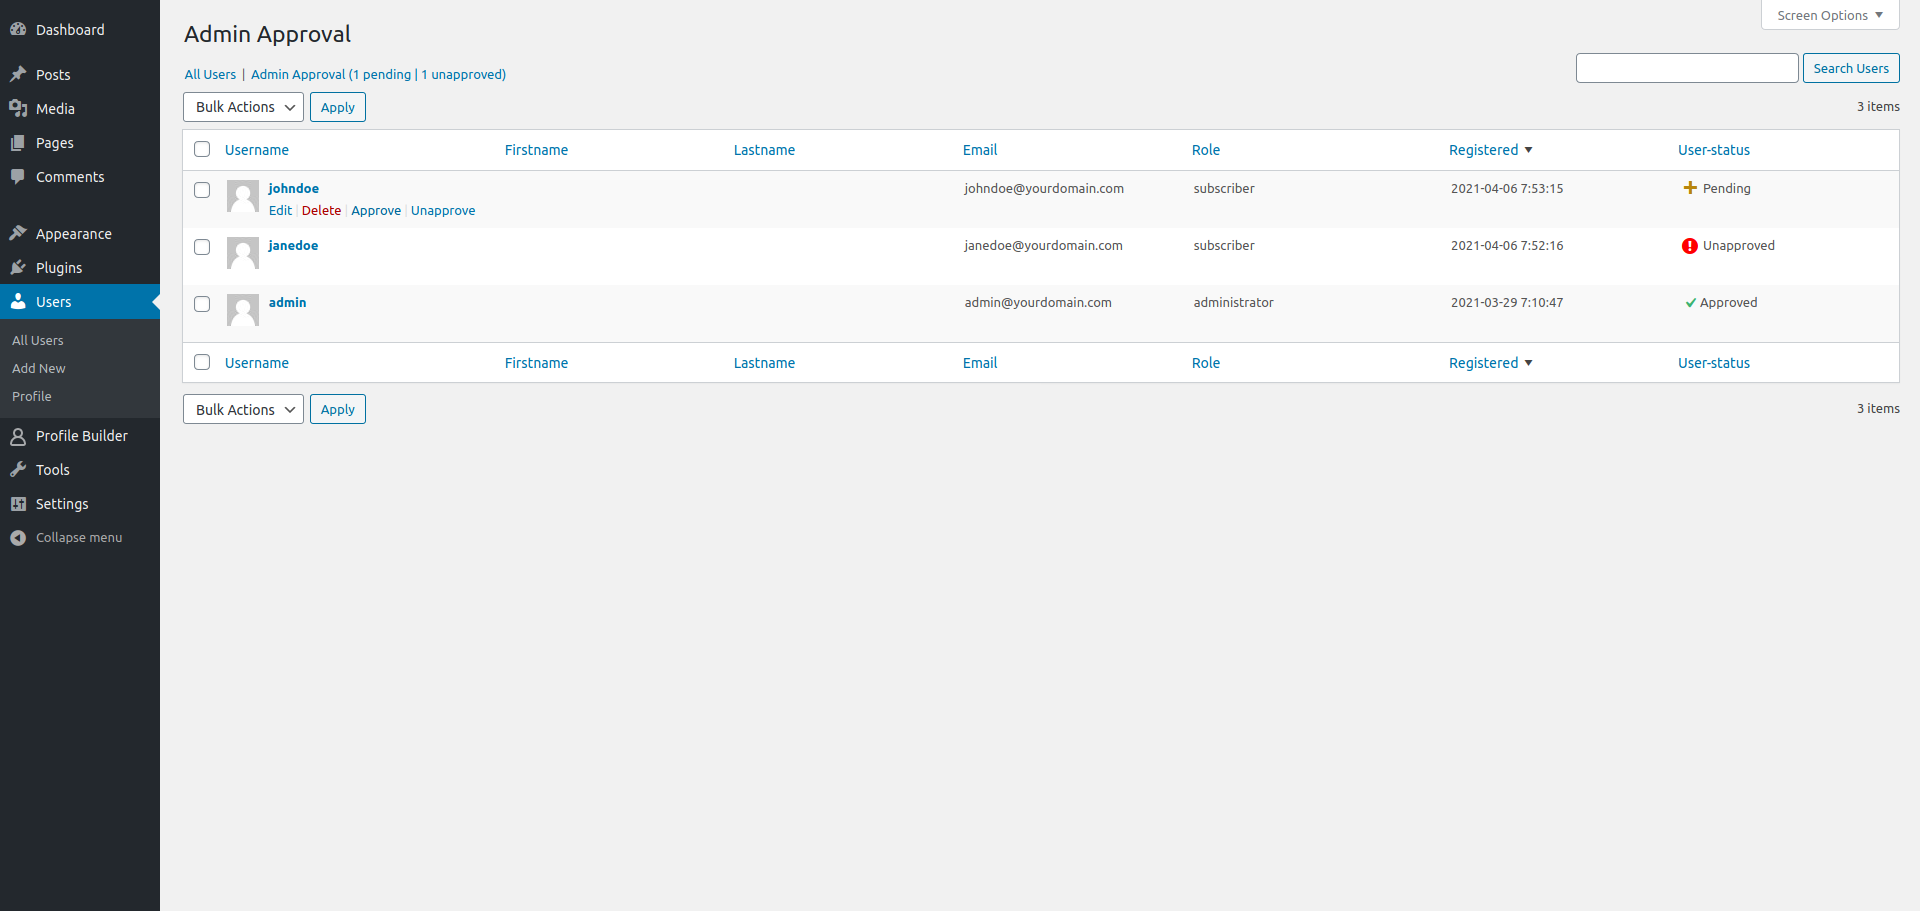 Profile Builder - Admin Approval Backend